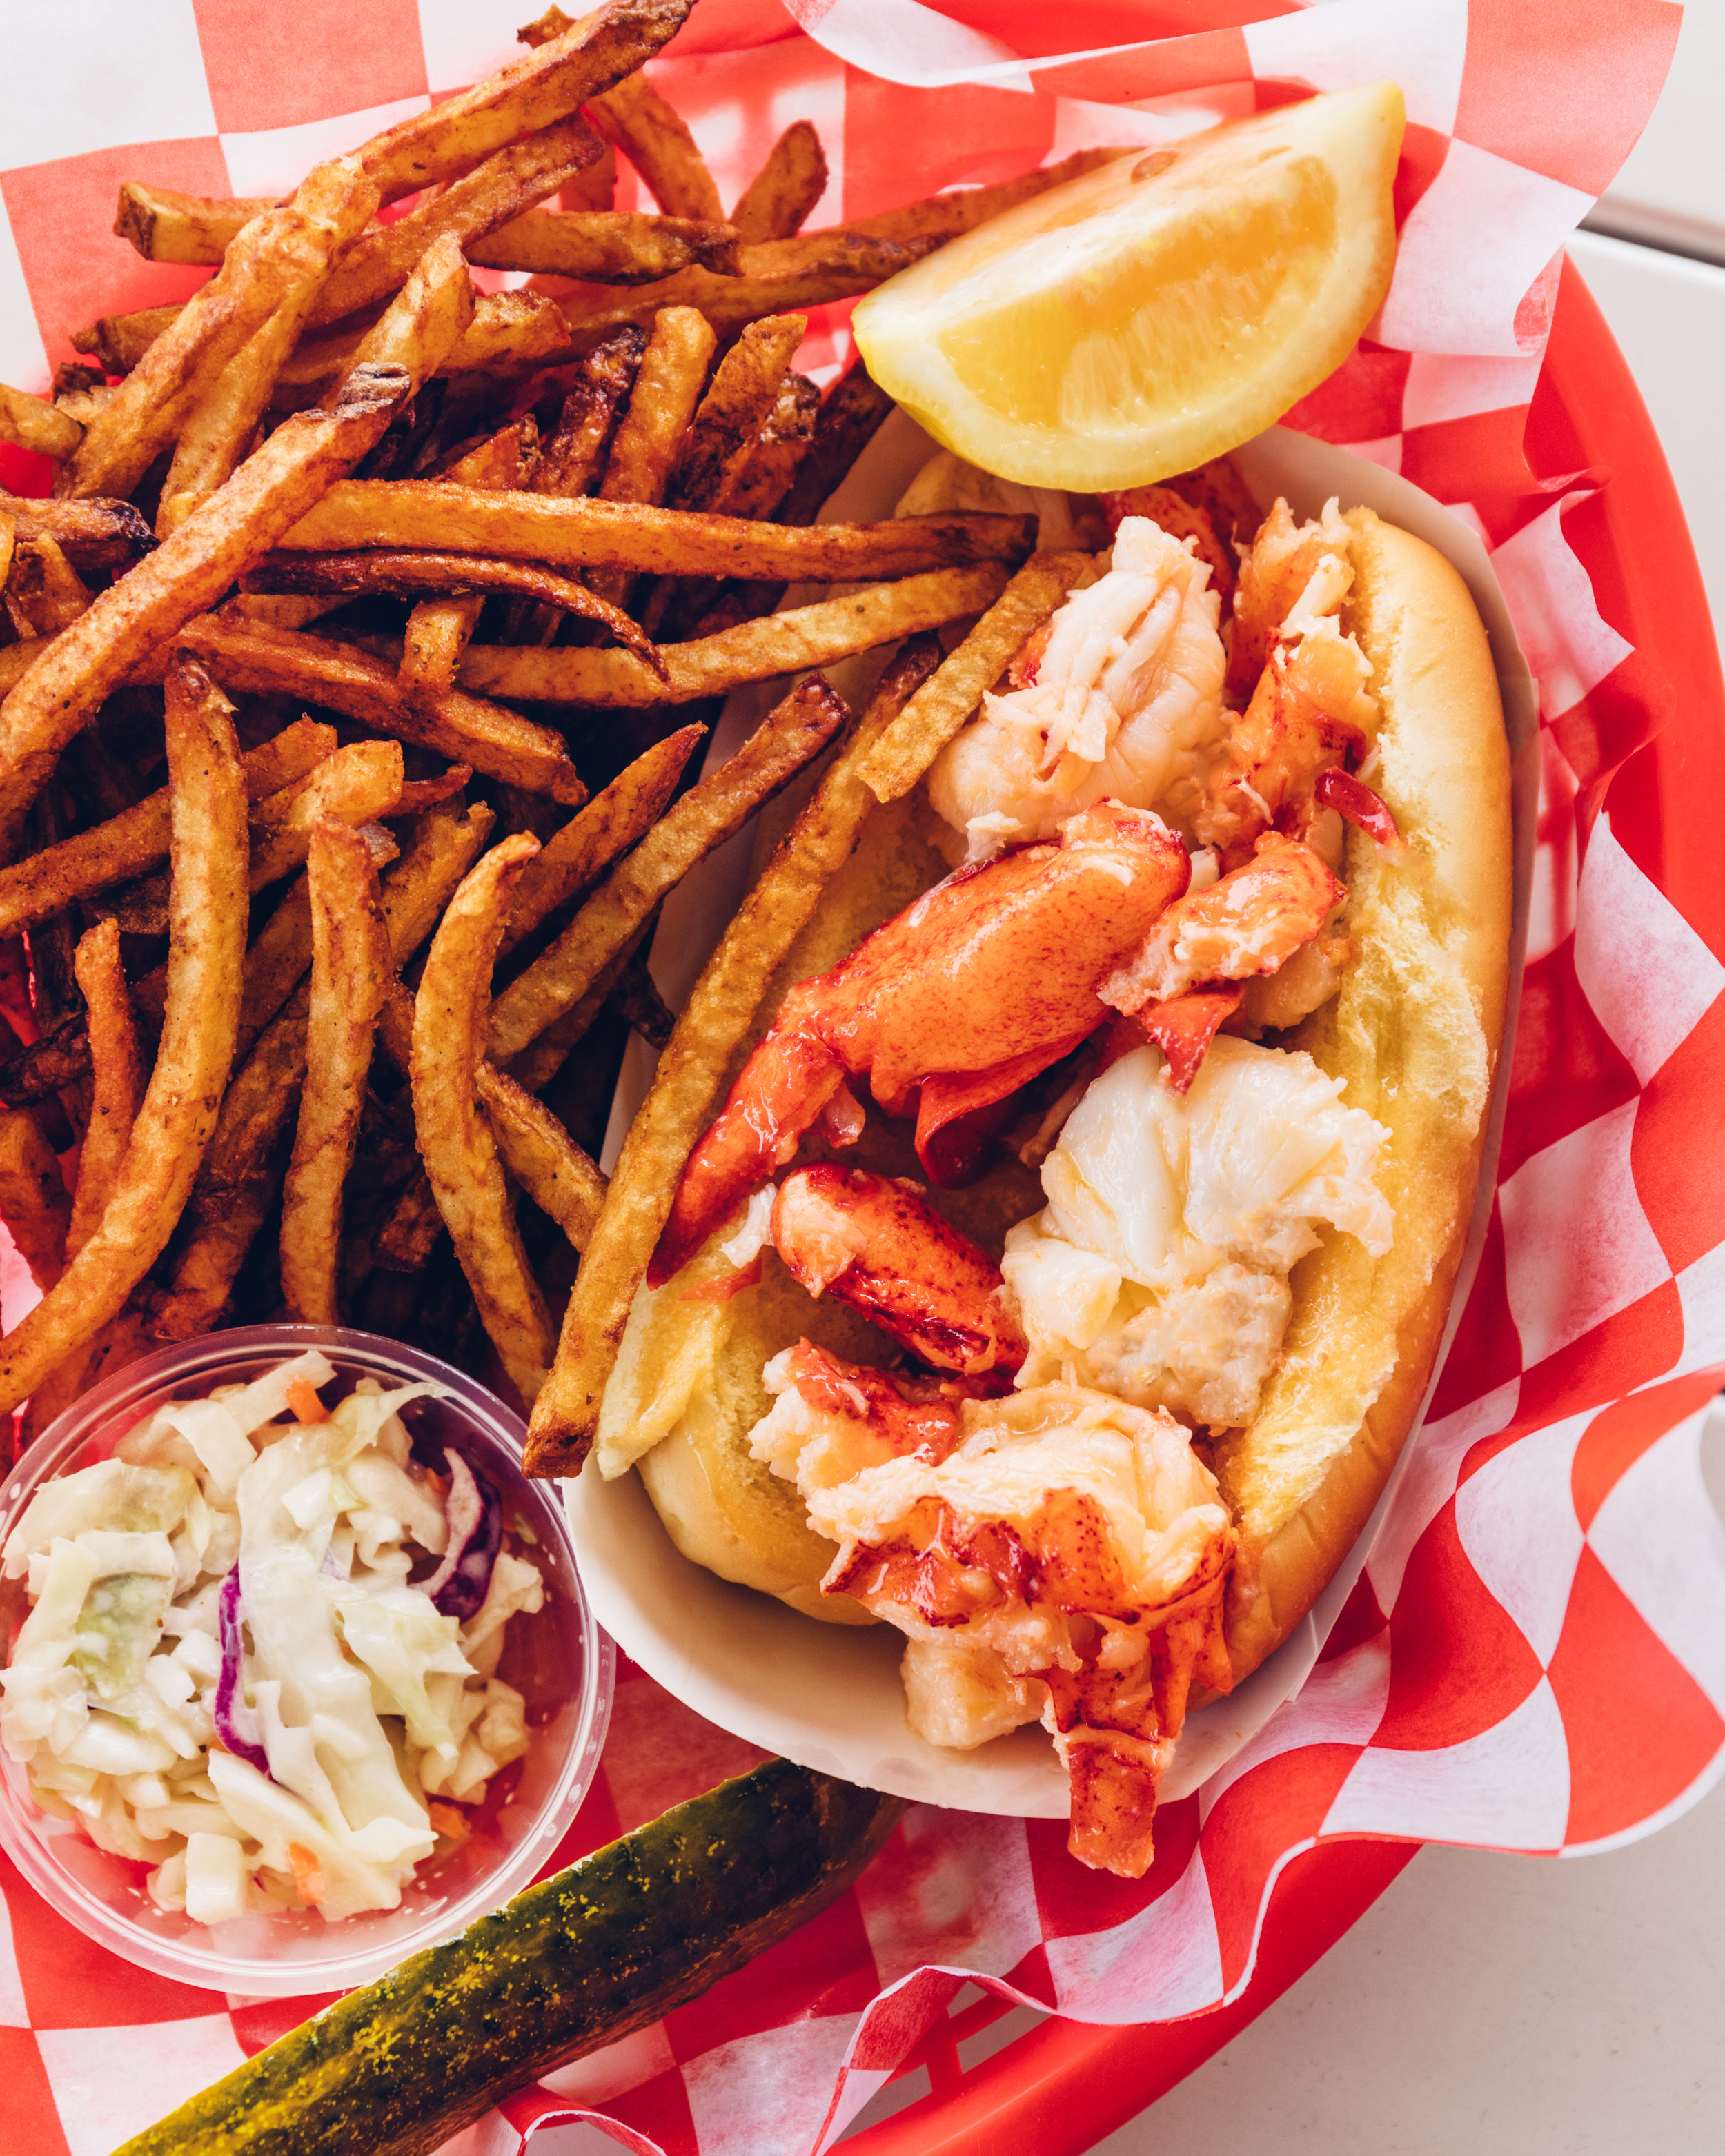 PointLobsterCo_LobsterRoll_NorthShore_JerseyShore_007.jpg